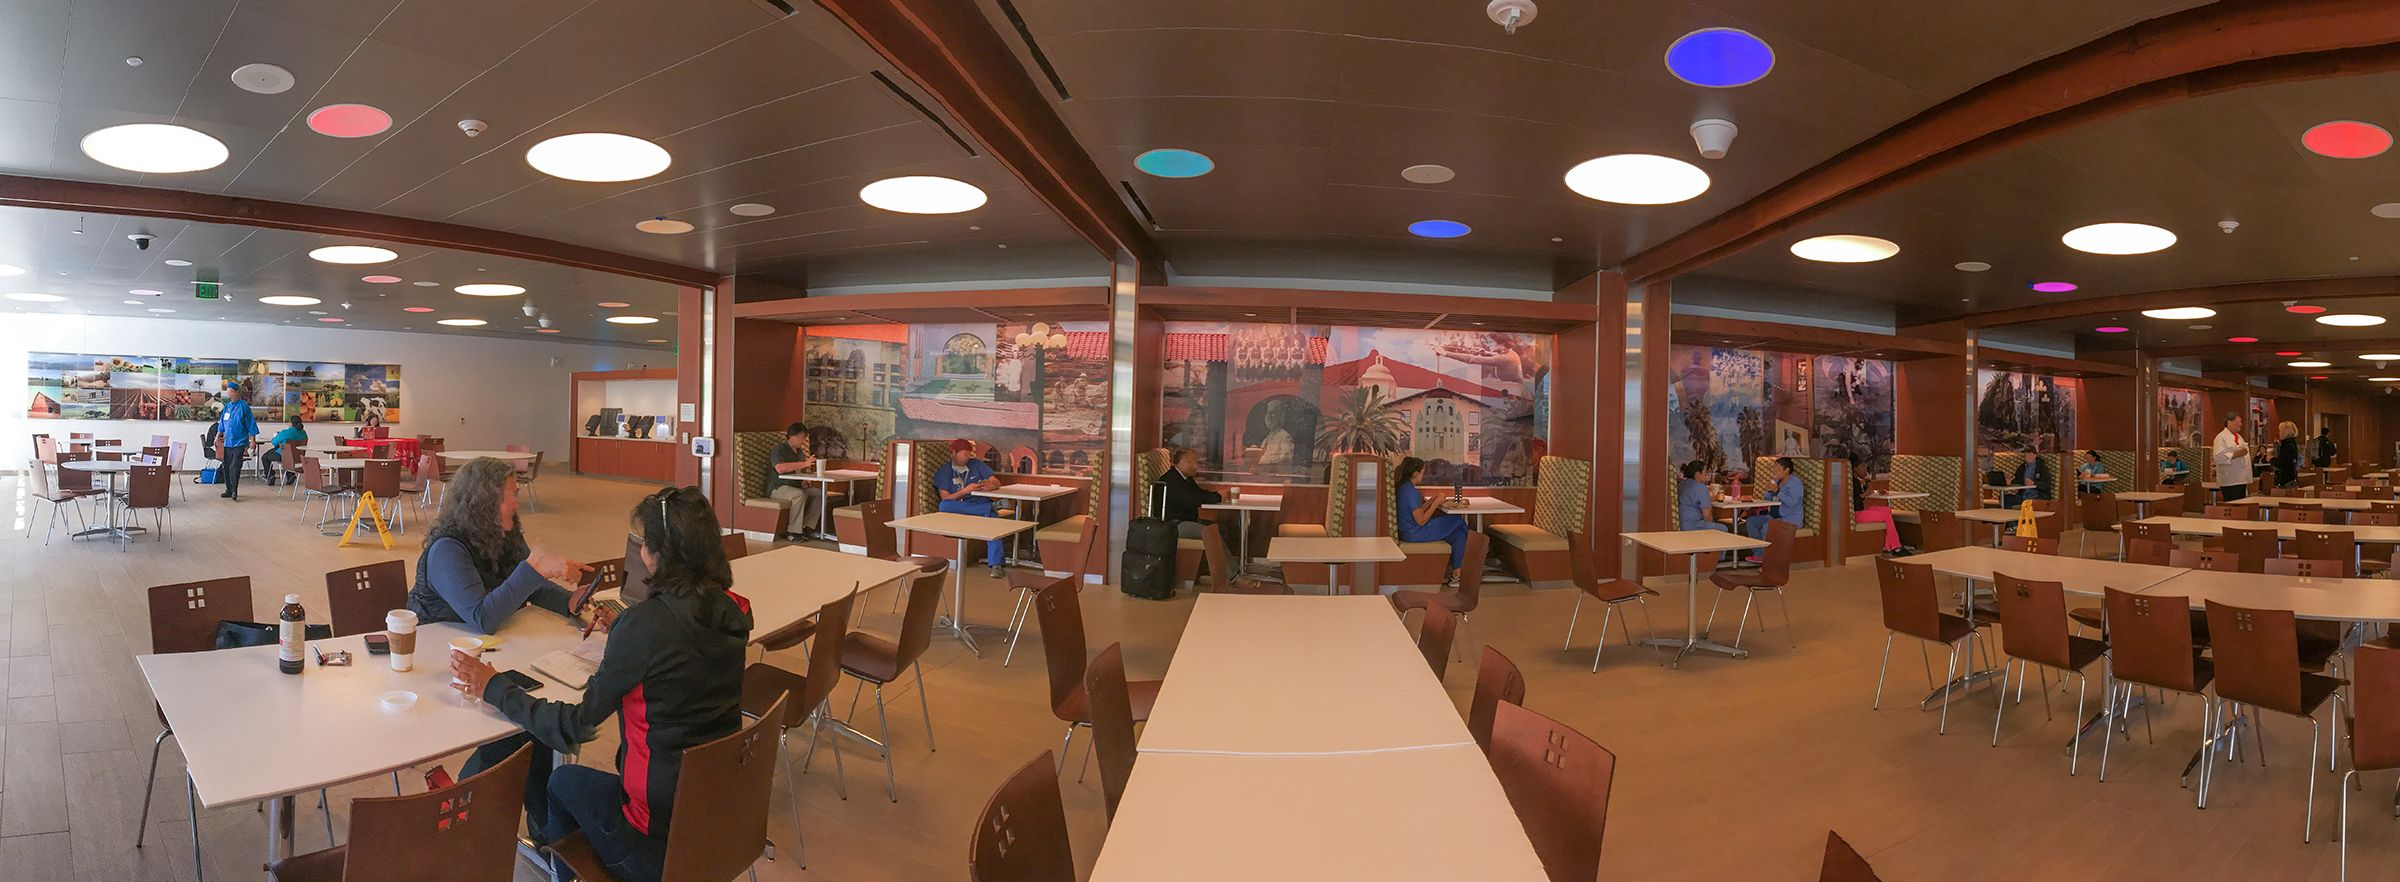 Lucille Packard Children's Hospital Cafeteria- Installation view of two large scale commissioned works